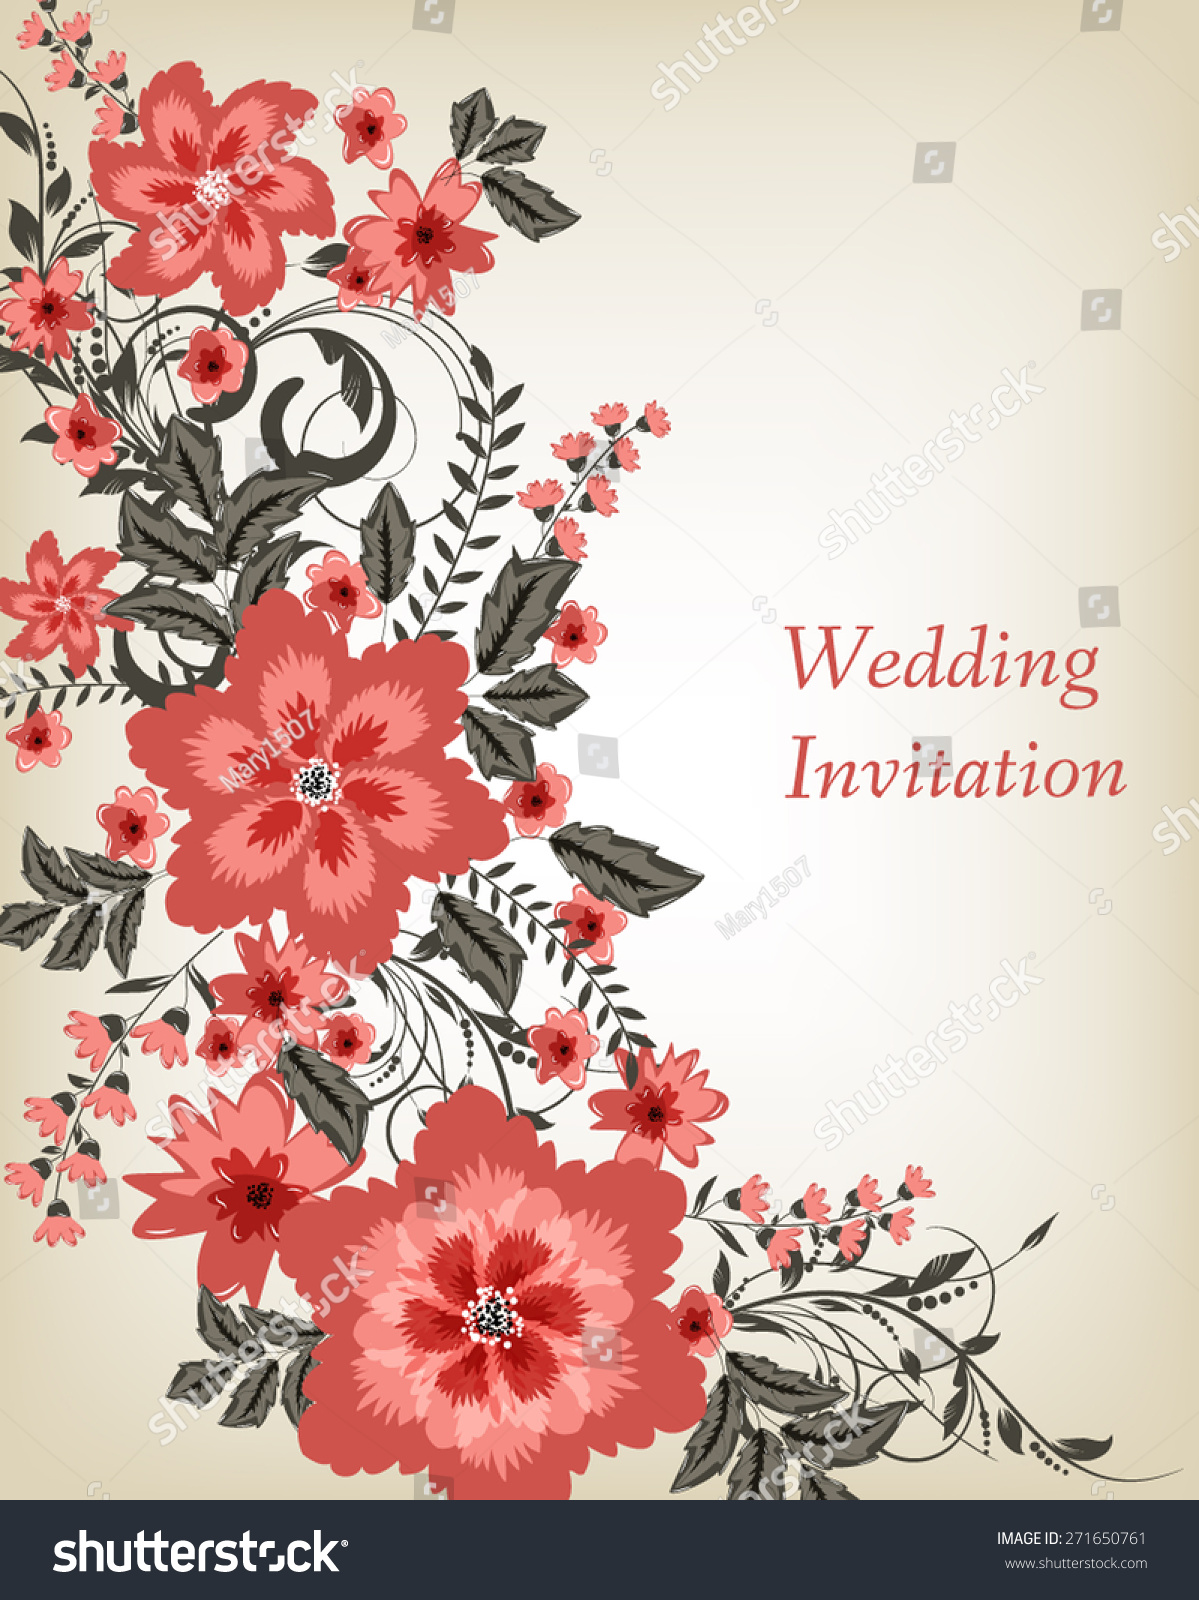 Wedding invitation card. Flowers abstract colorful background ...